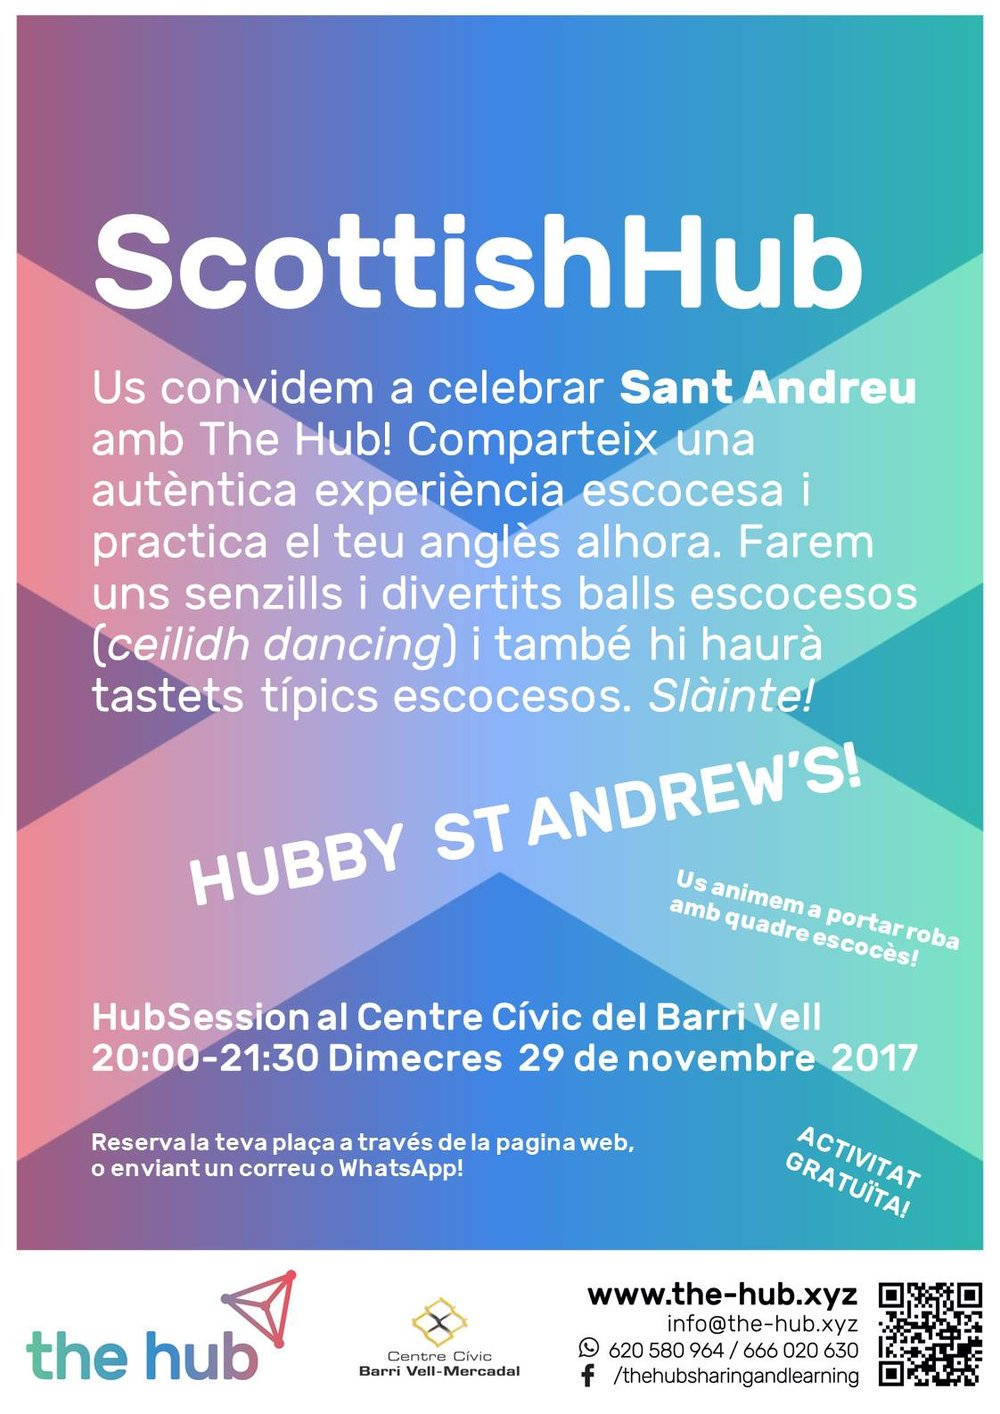 COMe and celebrate st andrew's with the hub! no cal ni parella ni experiència prèvia! are you dancing?!